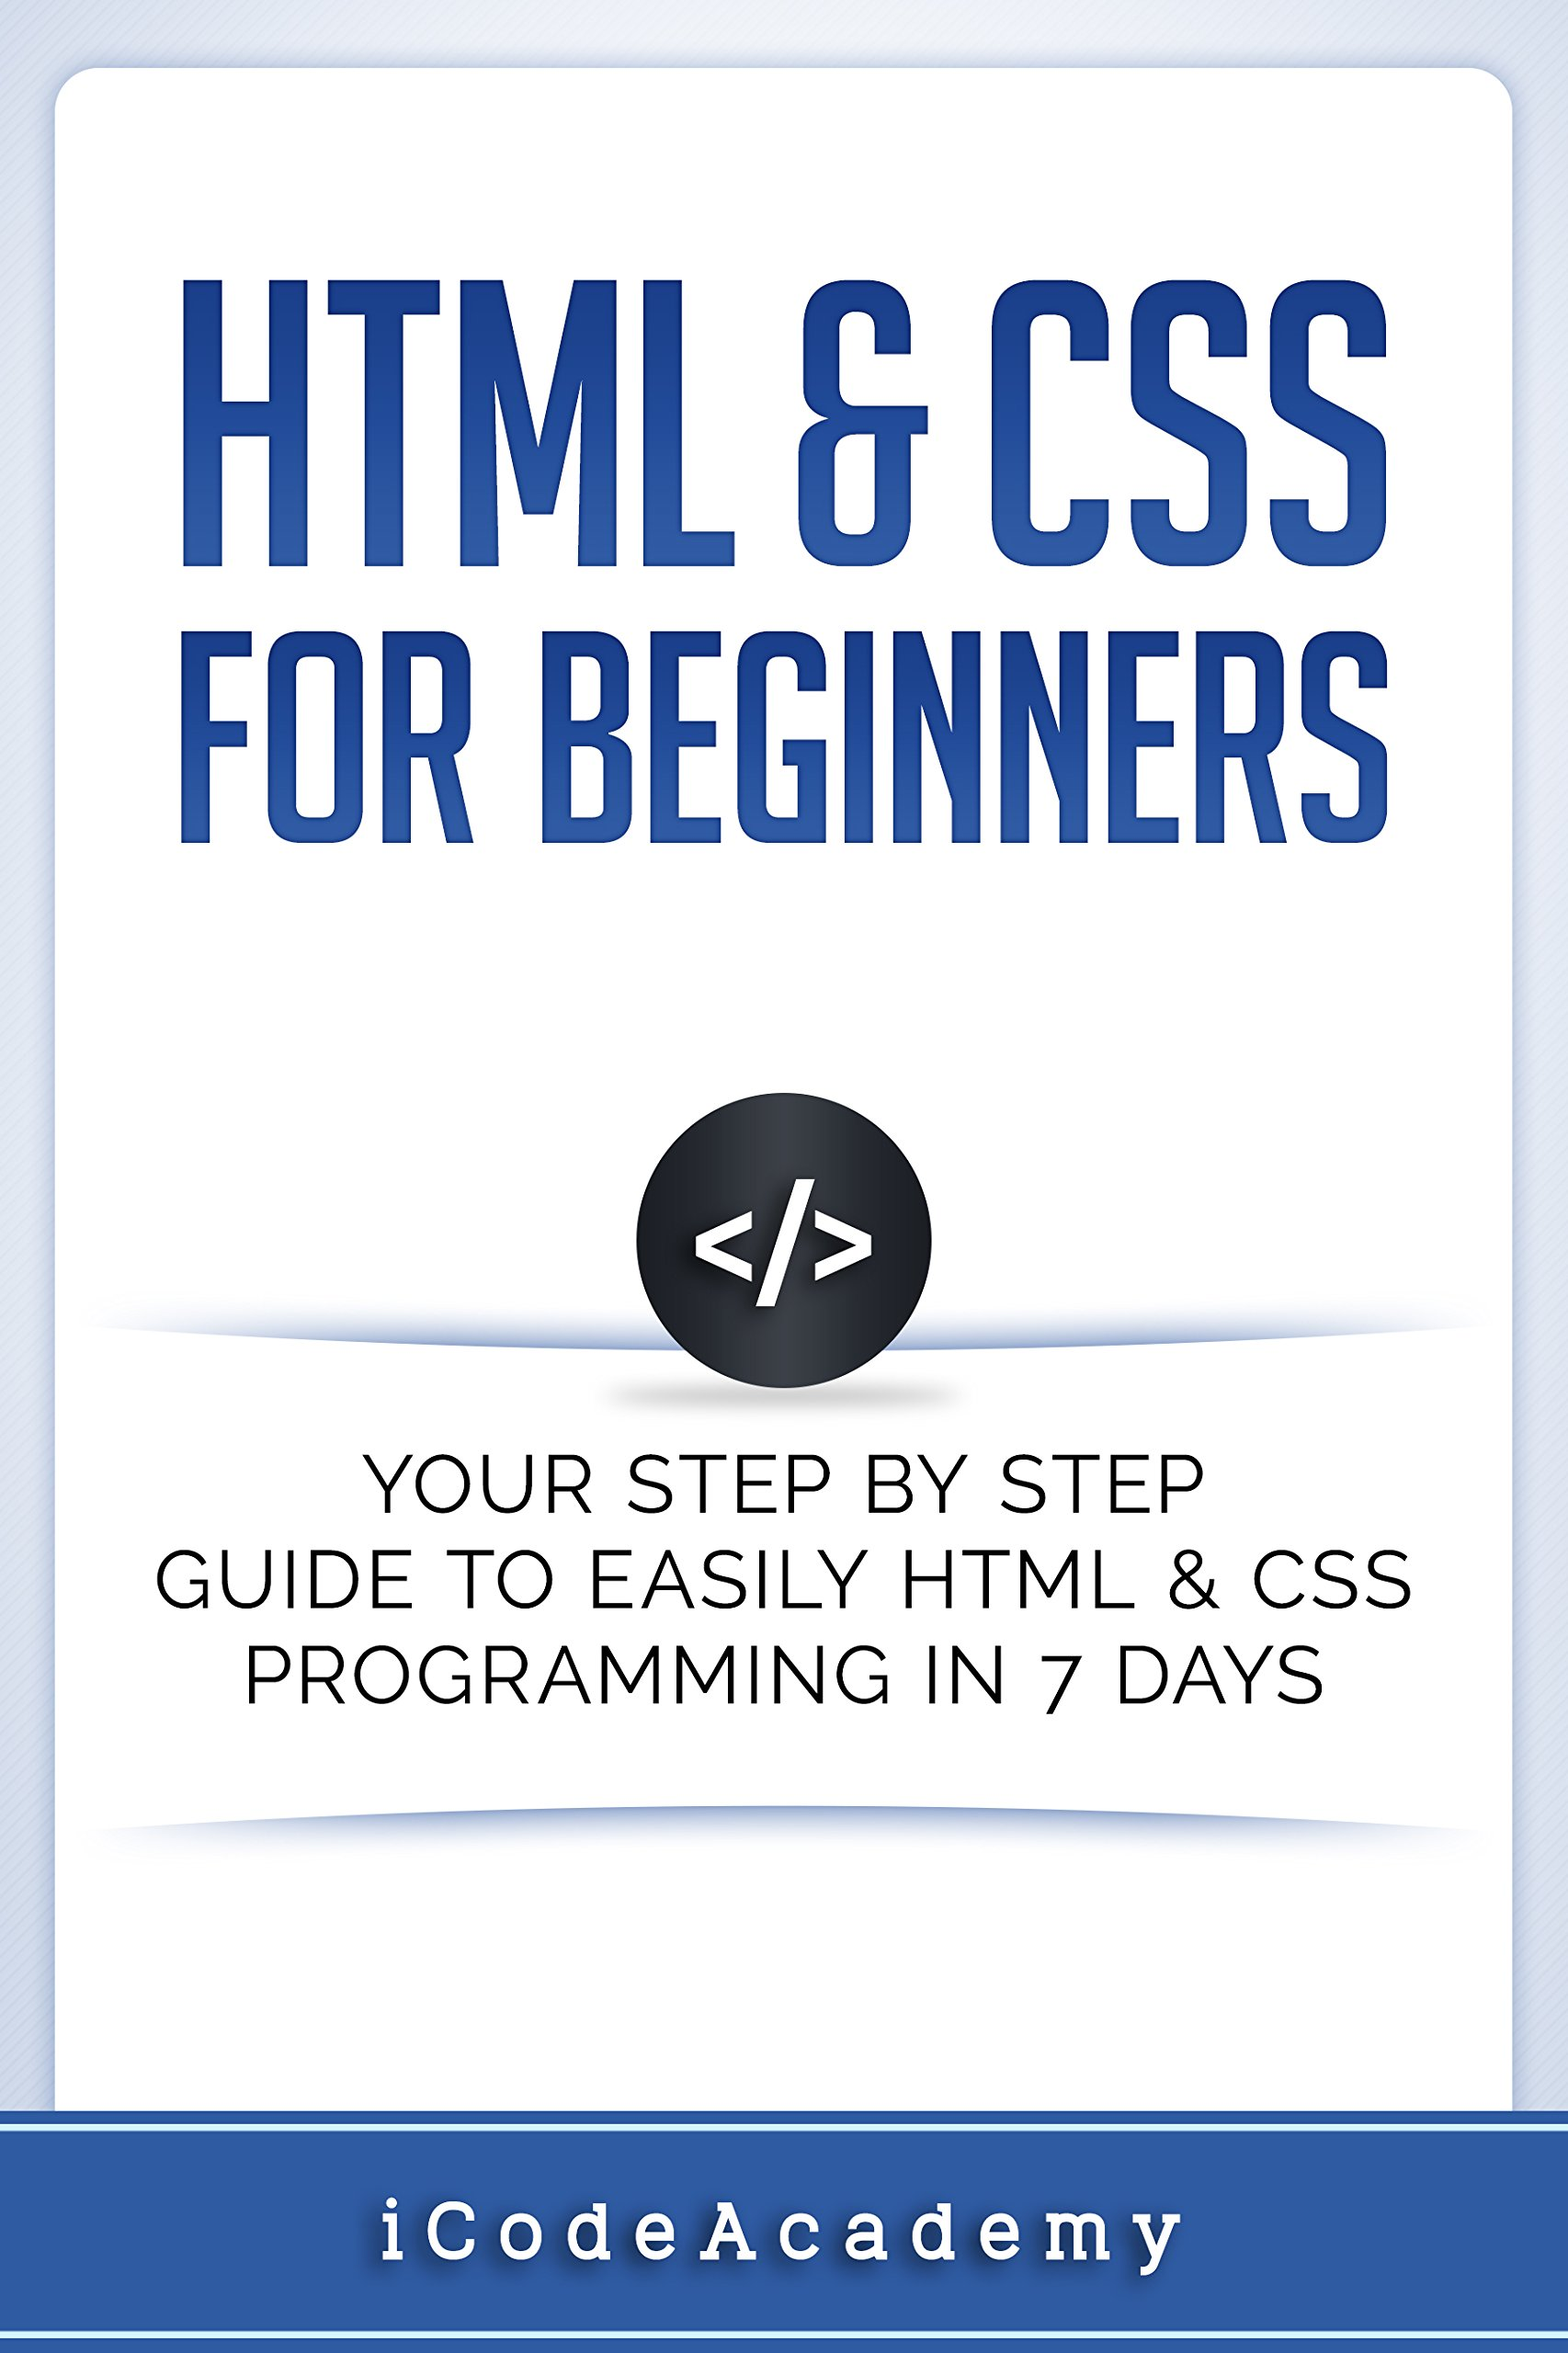 Html  HTML And CSS  For Beginners  Your Step By Step Guide To Easily HtmL And Css Programming In 7 Days  English Edition